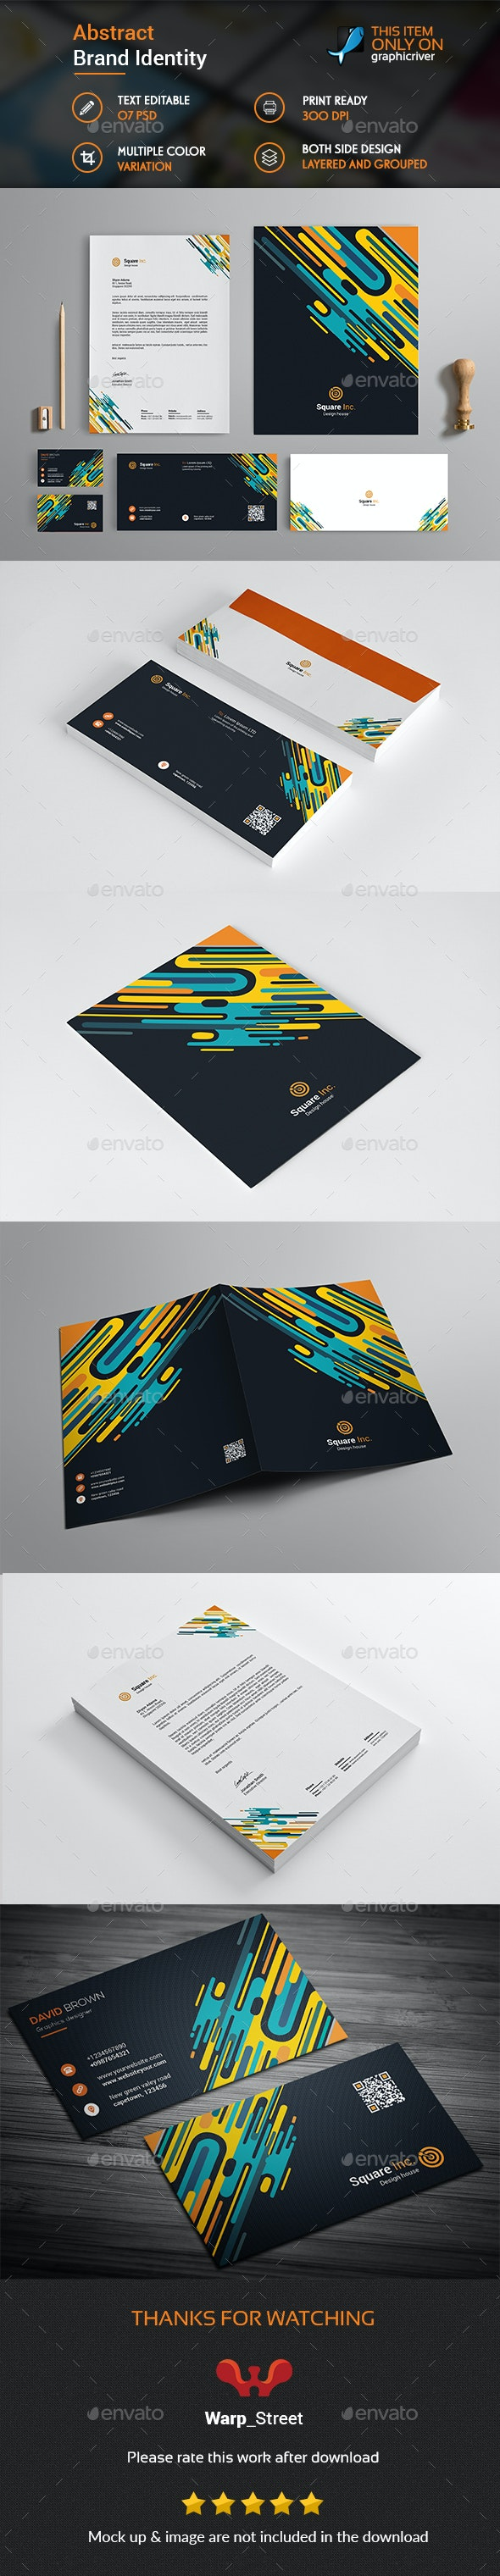 Abstract Brand Identity Design - Stationery Print Templates